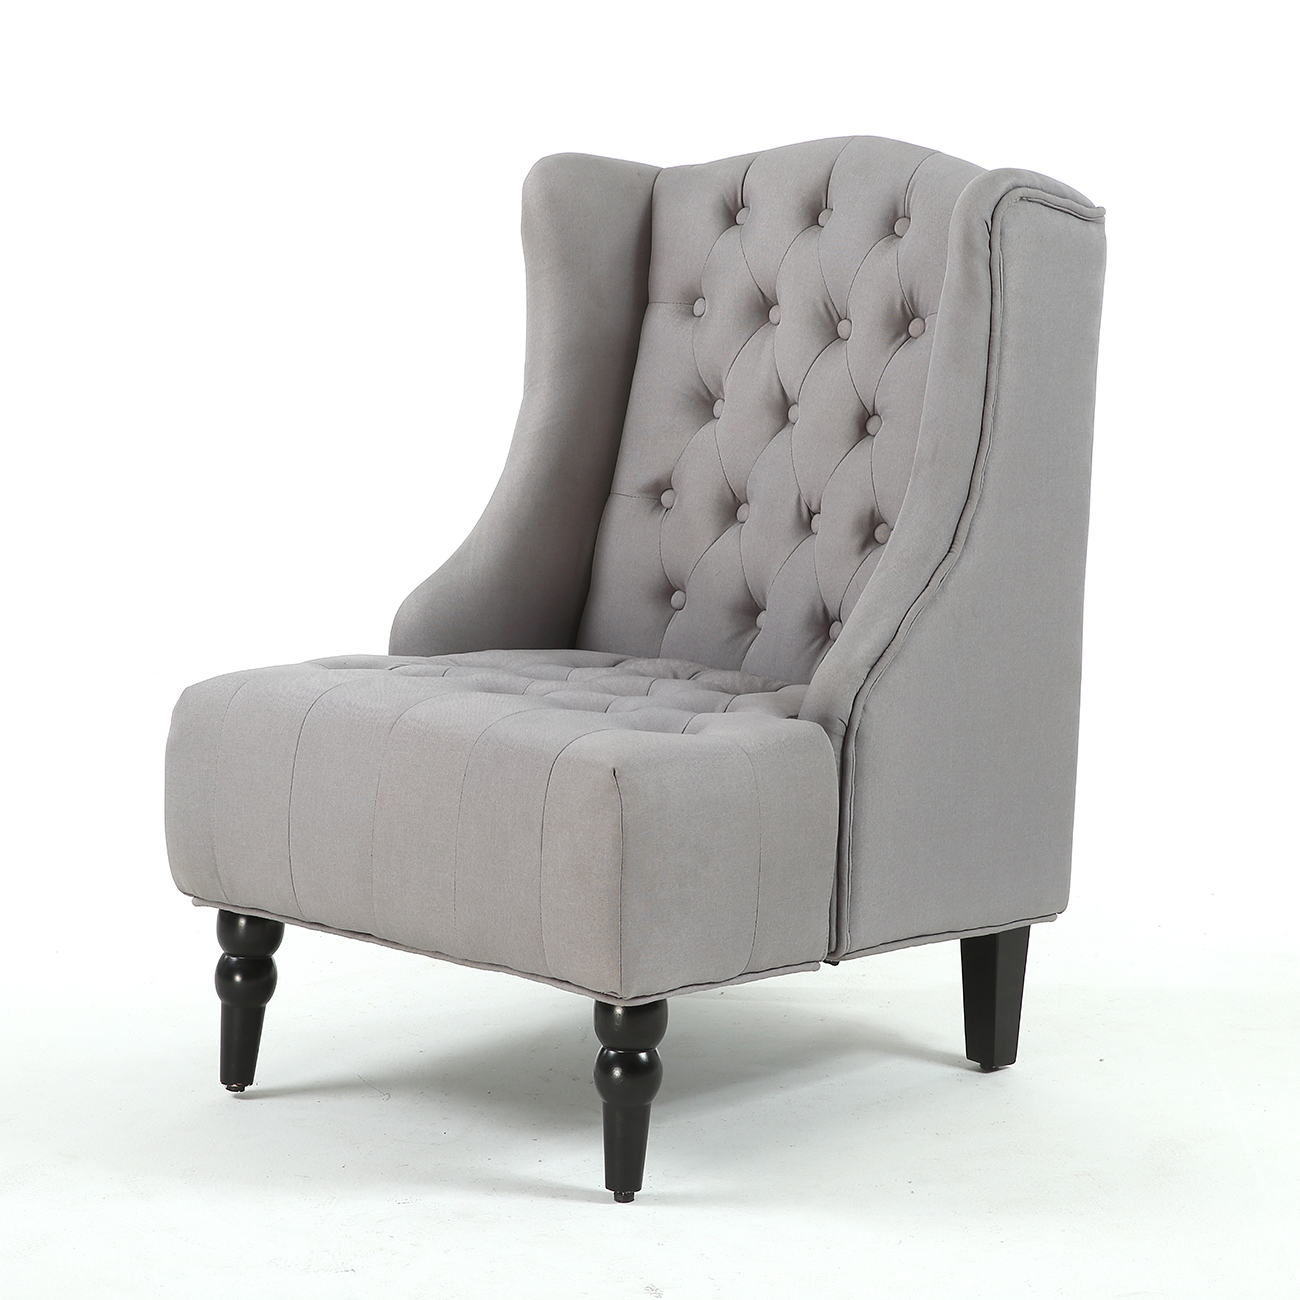 New Modern Wingback Accent Chair Diamond Tufted Linen